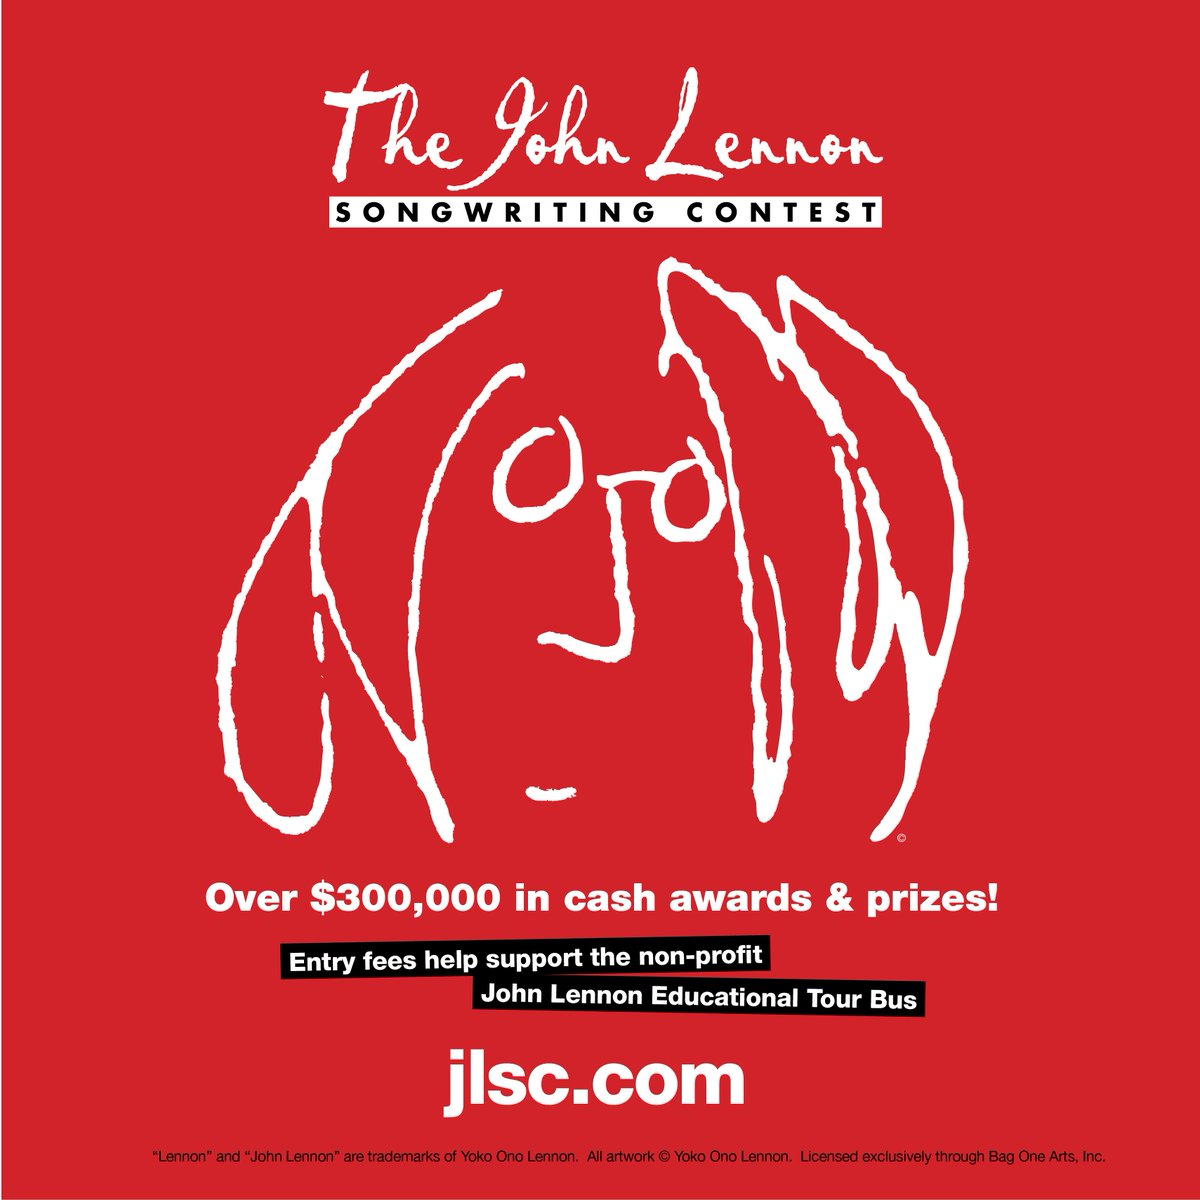 Tag a friend! Enter @thejlsc by 12/15, support @lennonbus! #JohnLennon #Songwriting #Contest https://t.co/X6lZBwGrnq https://t.co/dX6cTGJLnR